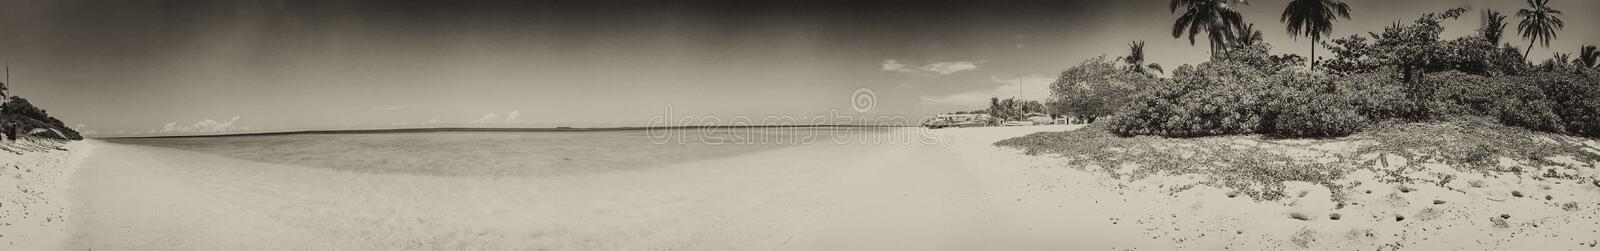 Panoramic view of Maldivian Sea and Island.  royalty free stock images